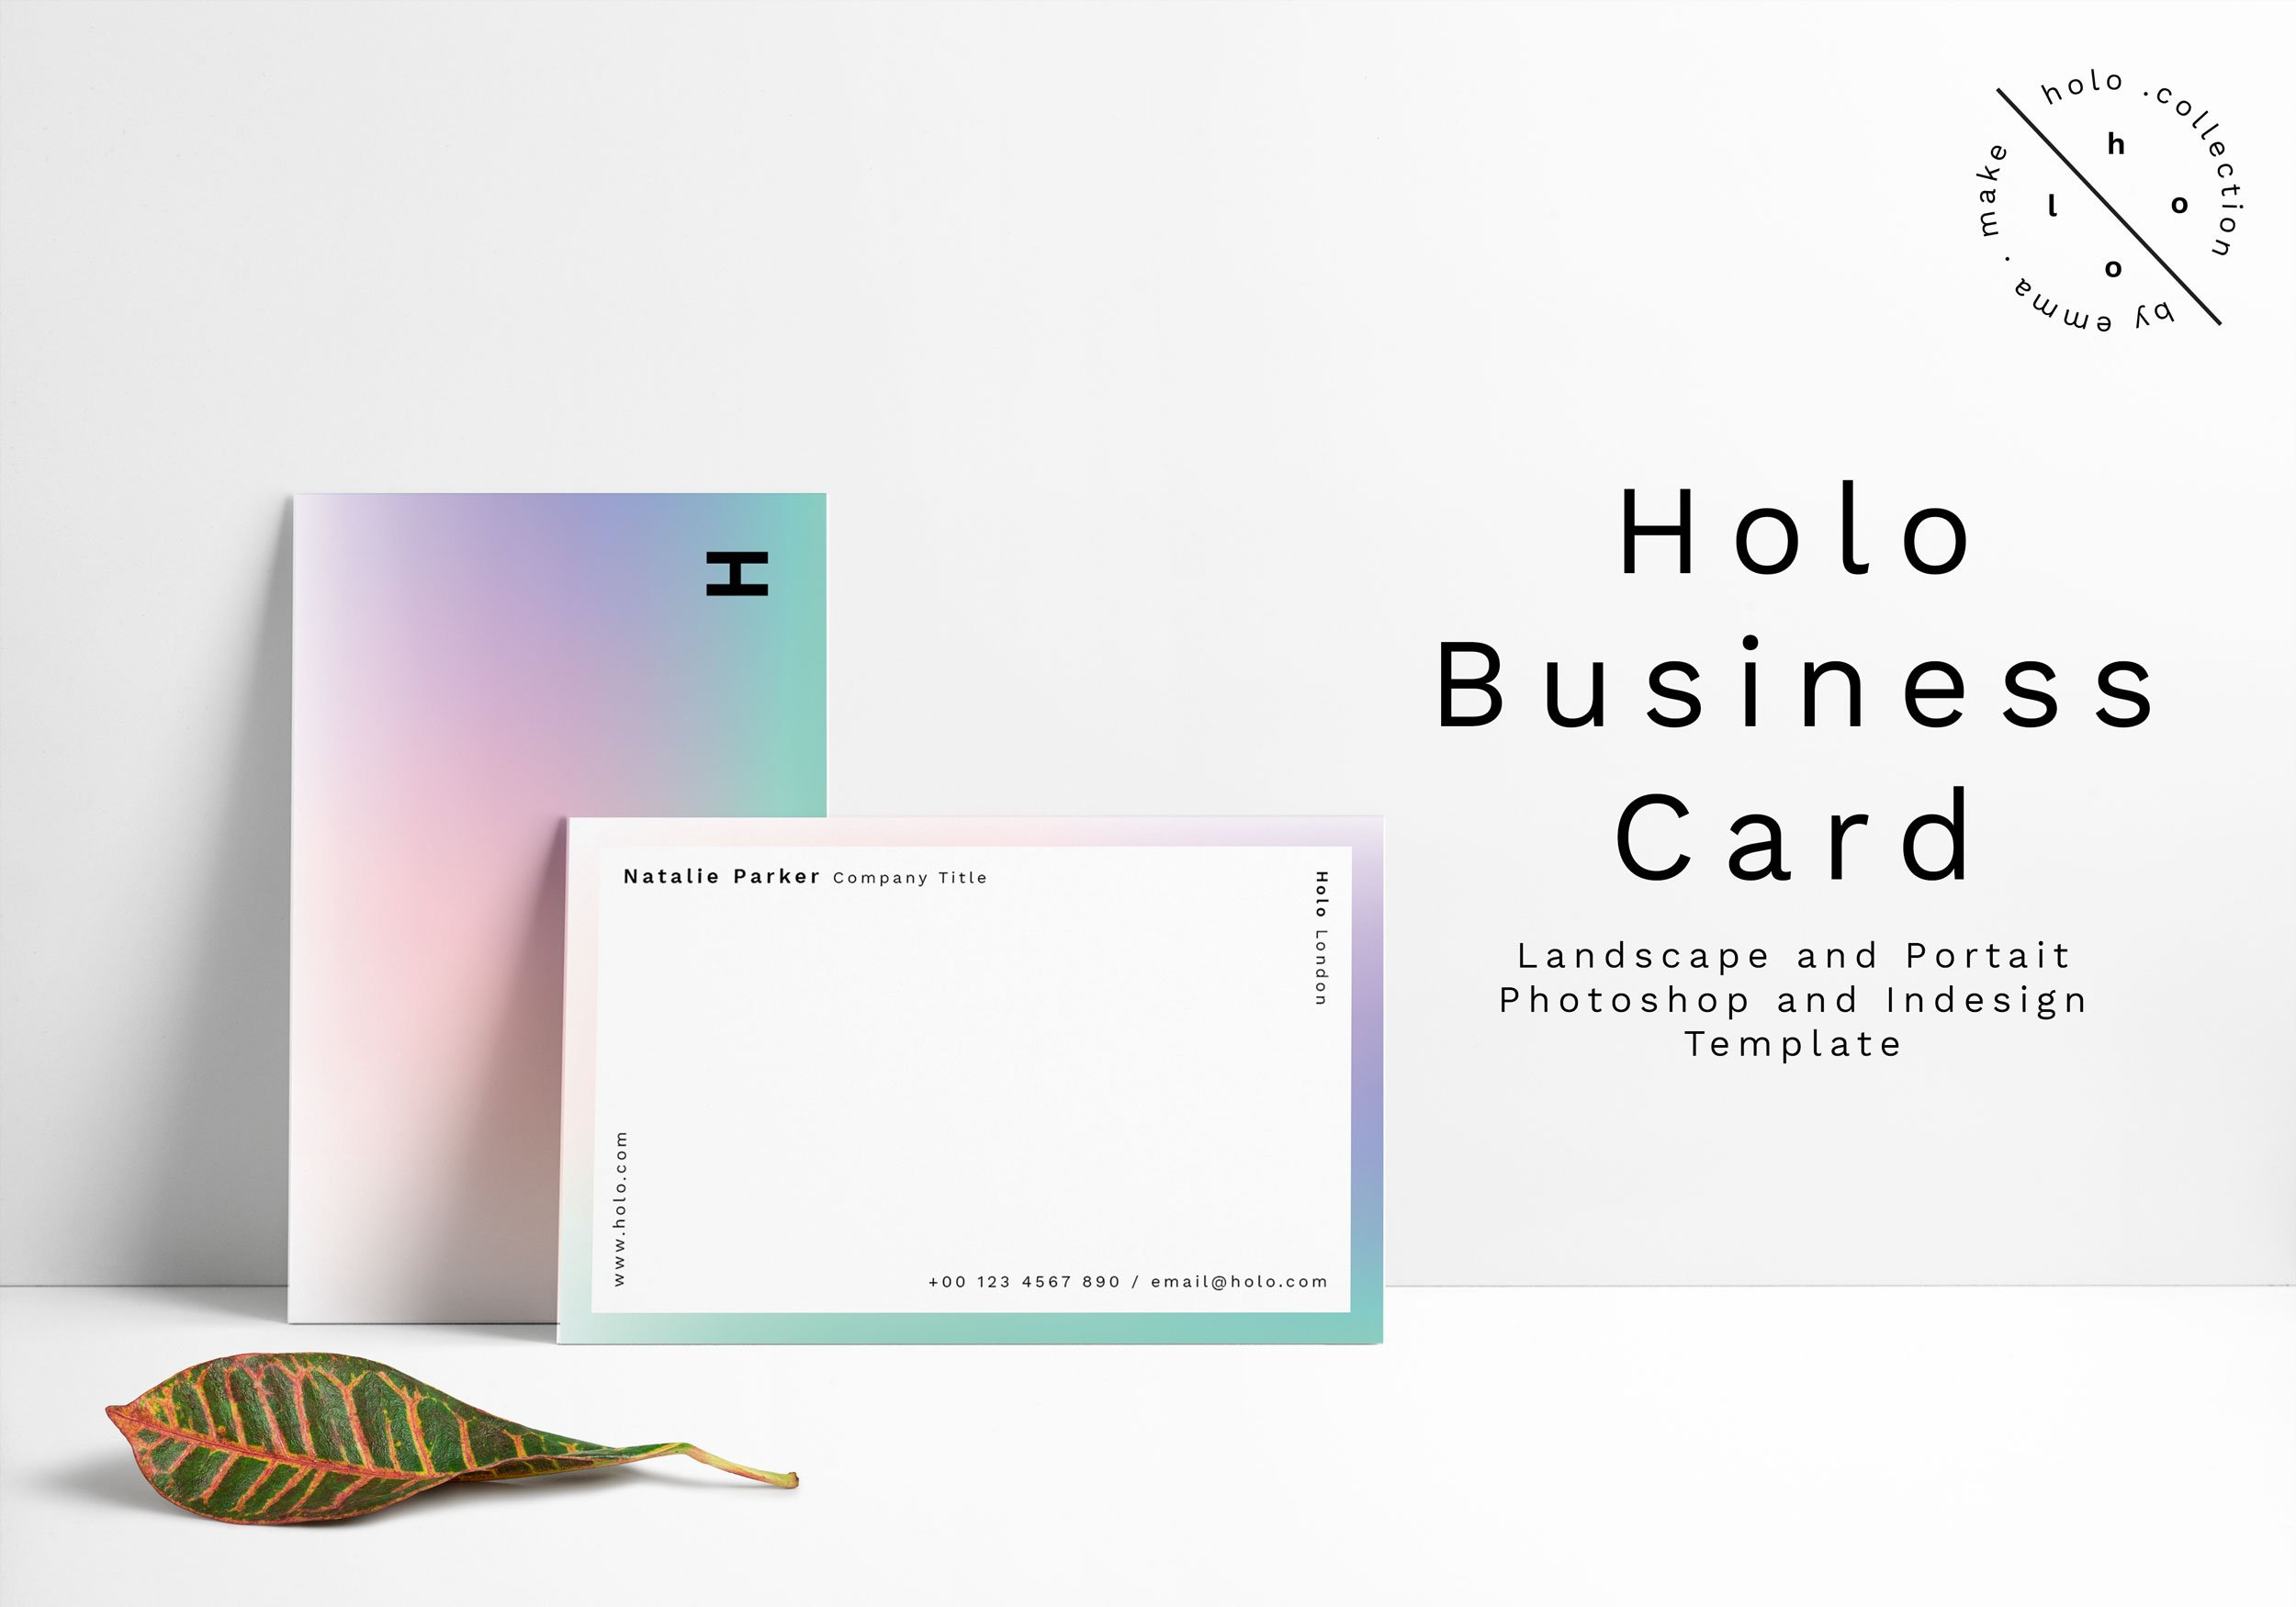 Holo business card design business card templates creative market reheart Gallery